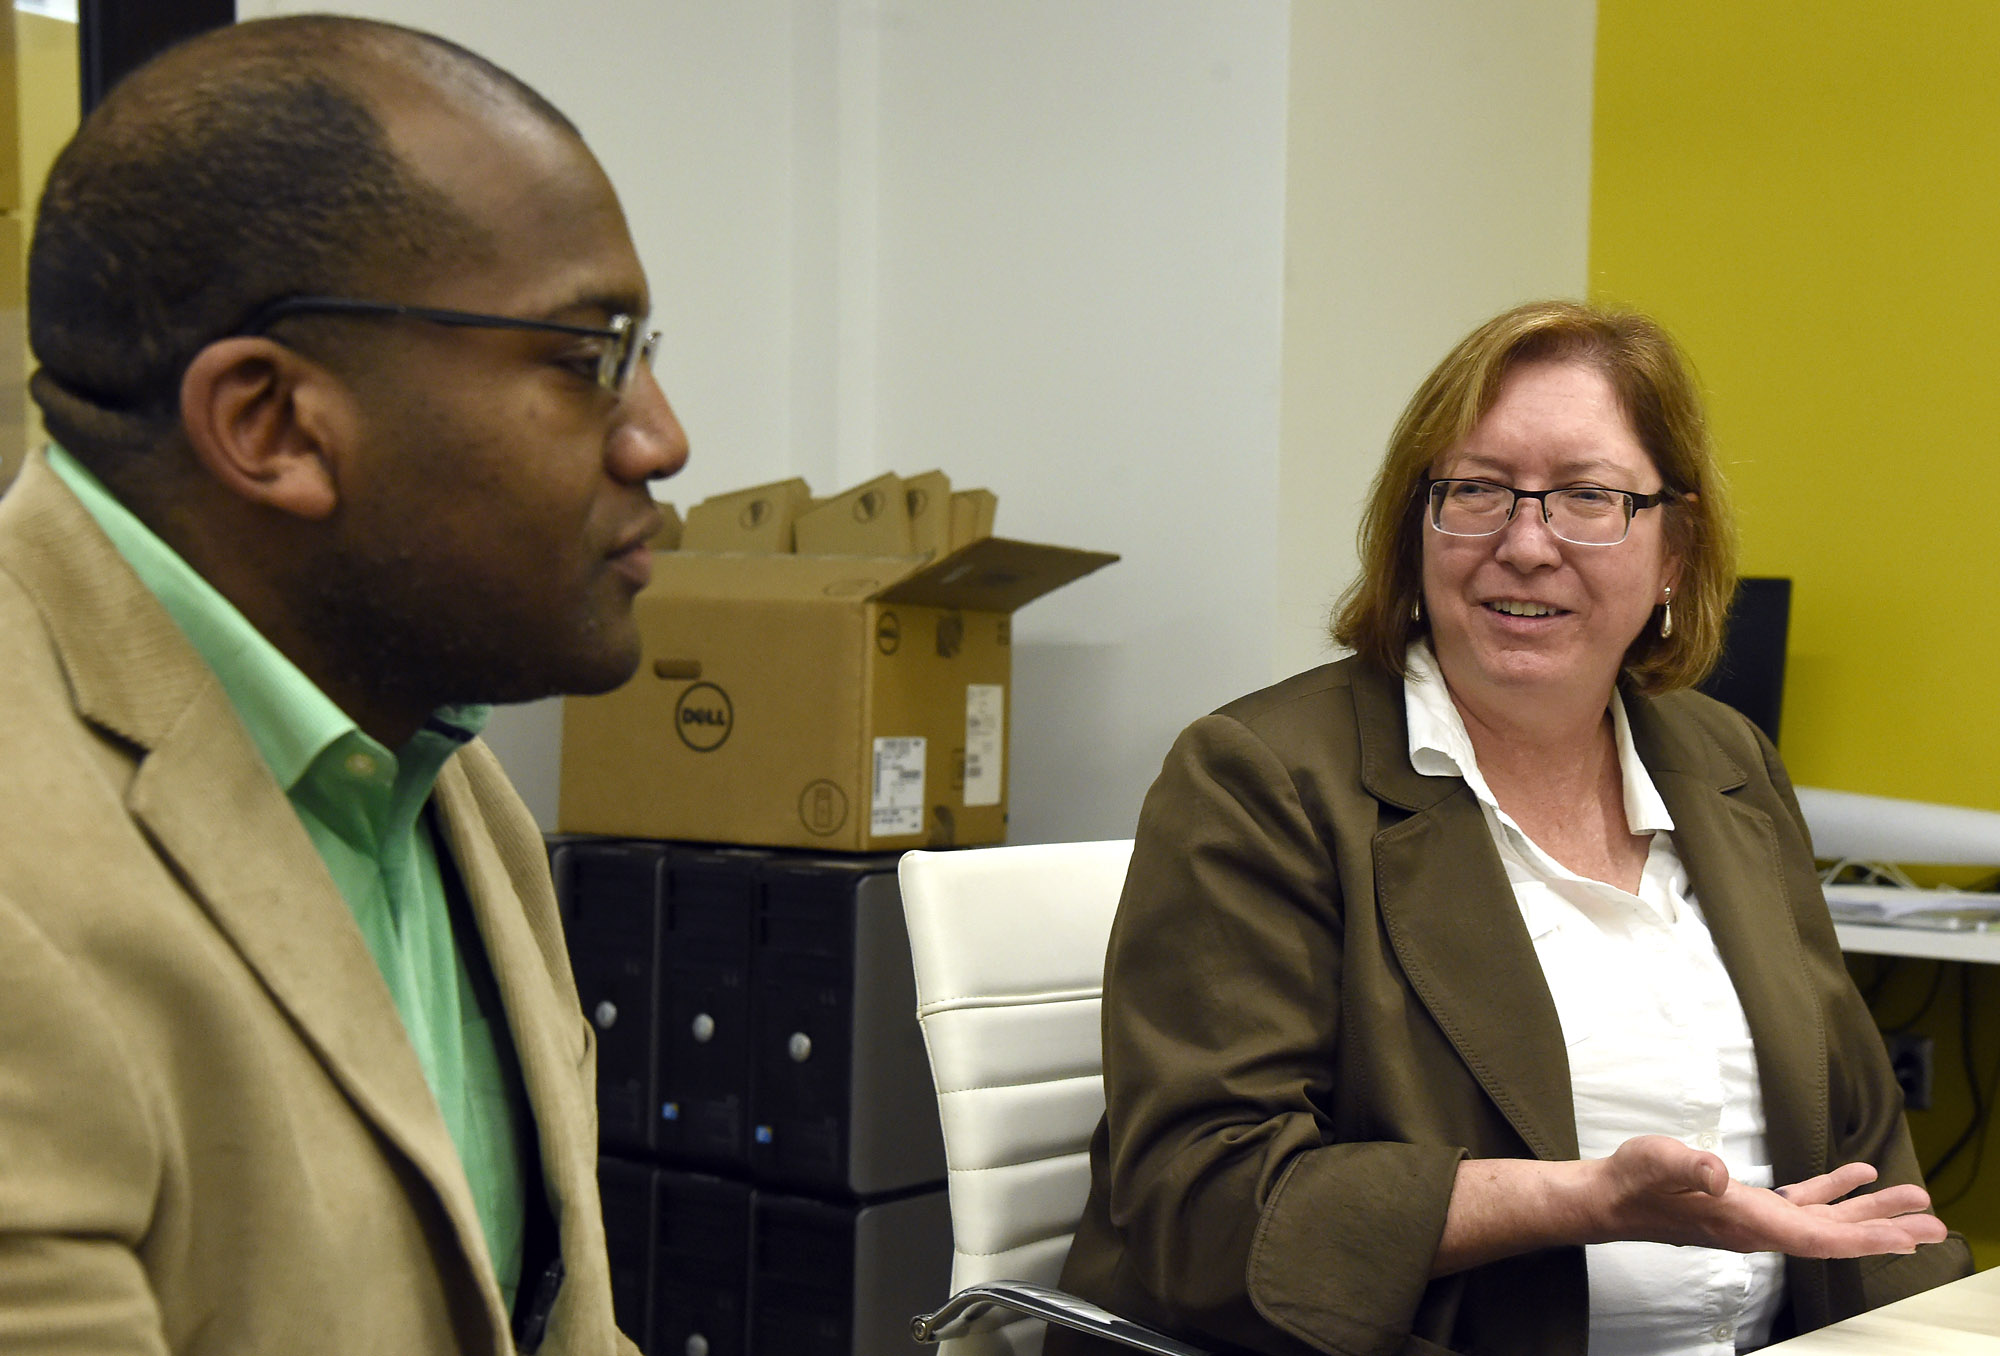 Instructors Wayne Heard and Shirley Hicks discuss a partnership program to help students earn CompTIA A+ certification needed for entry-level jobs in the IT field at the Innovation Depot in Birmingham, Ala., Friday, Feb. 17, 2017. (Mark Almond, for The Birmingham Times)